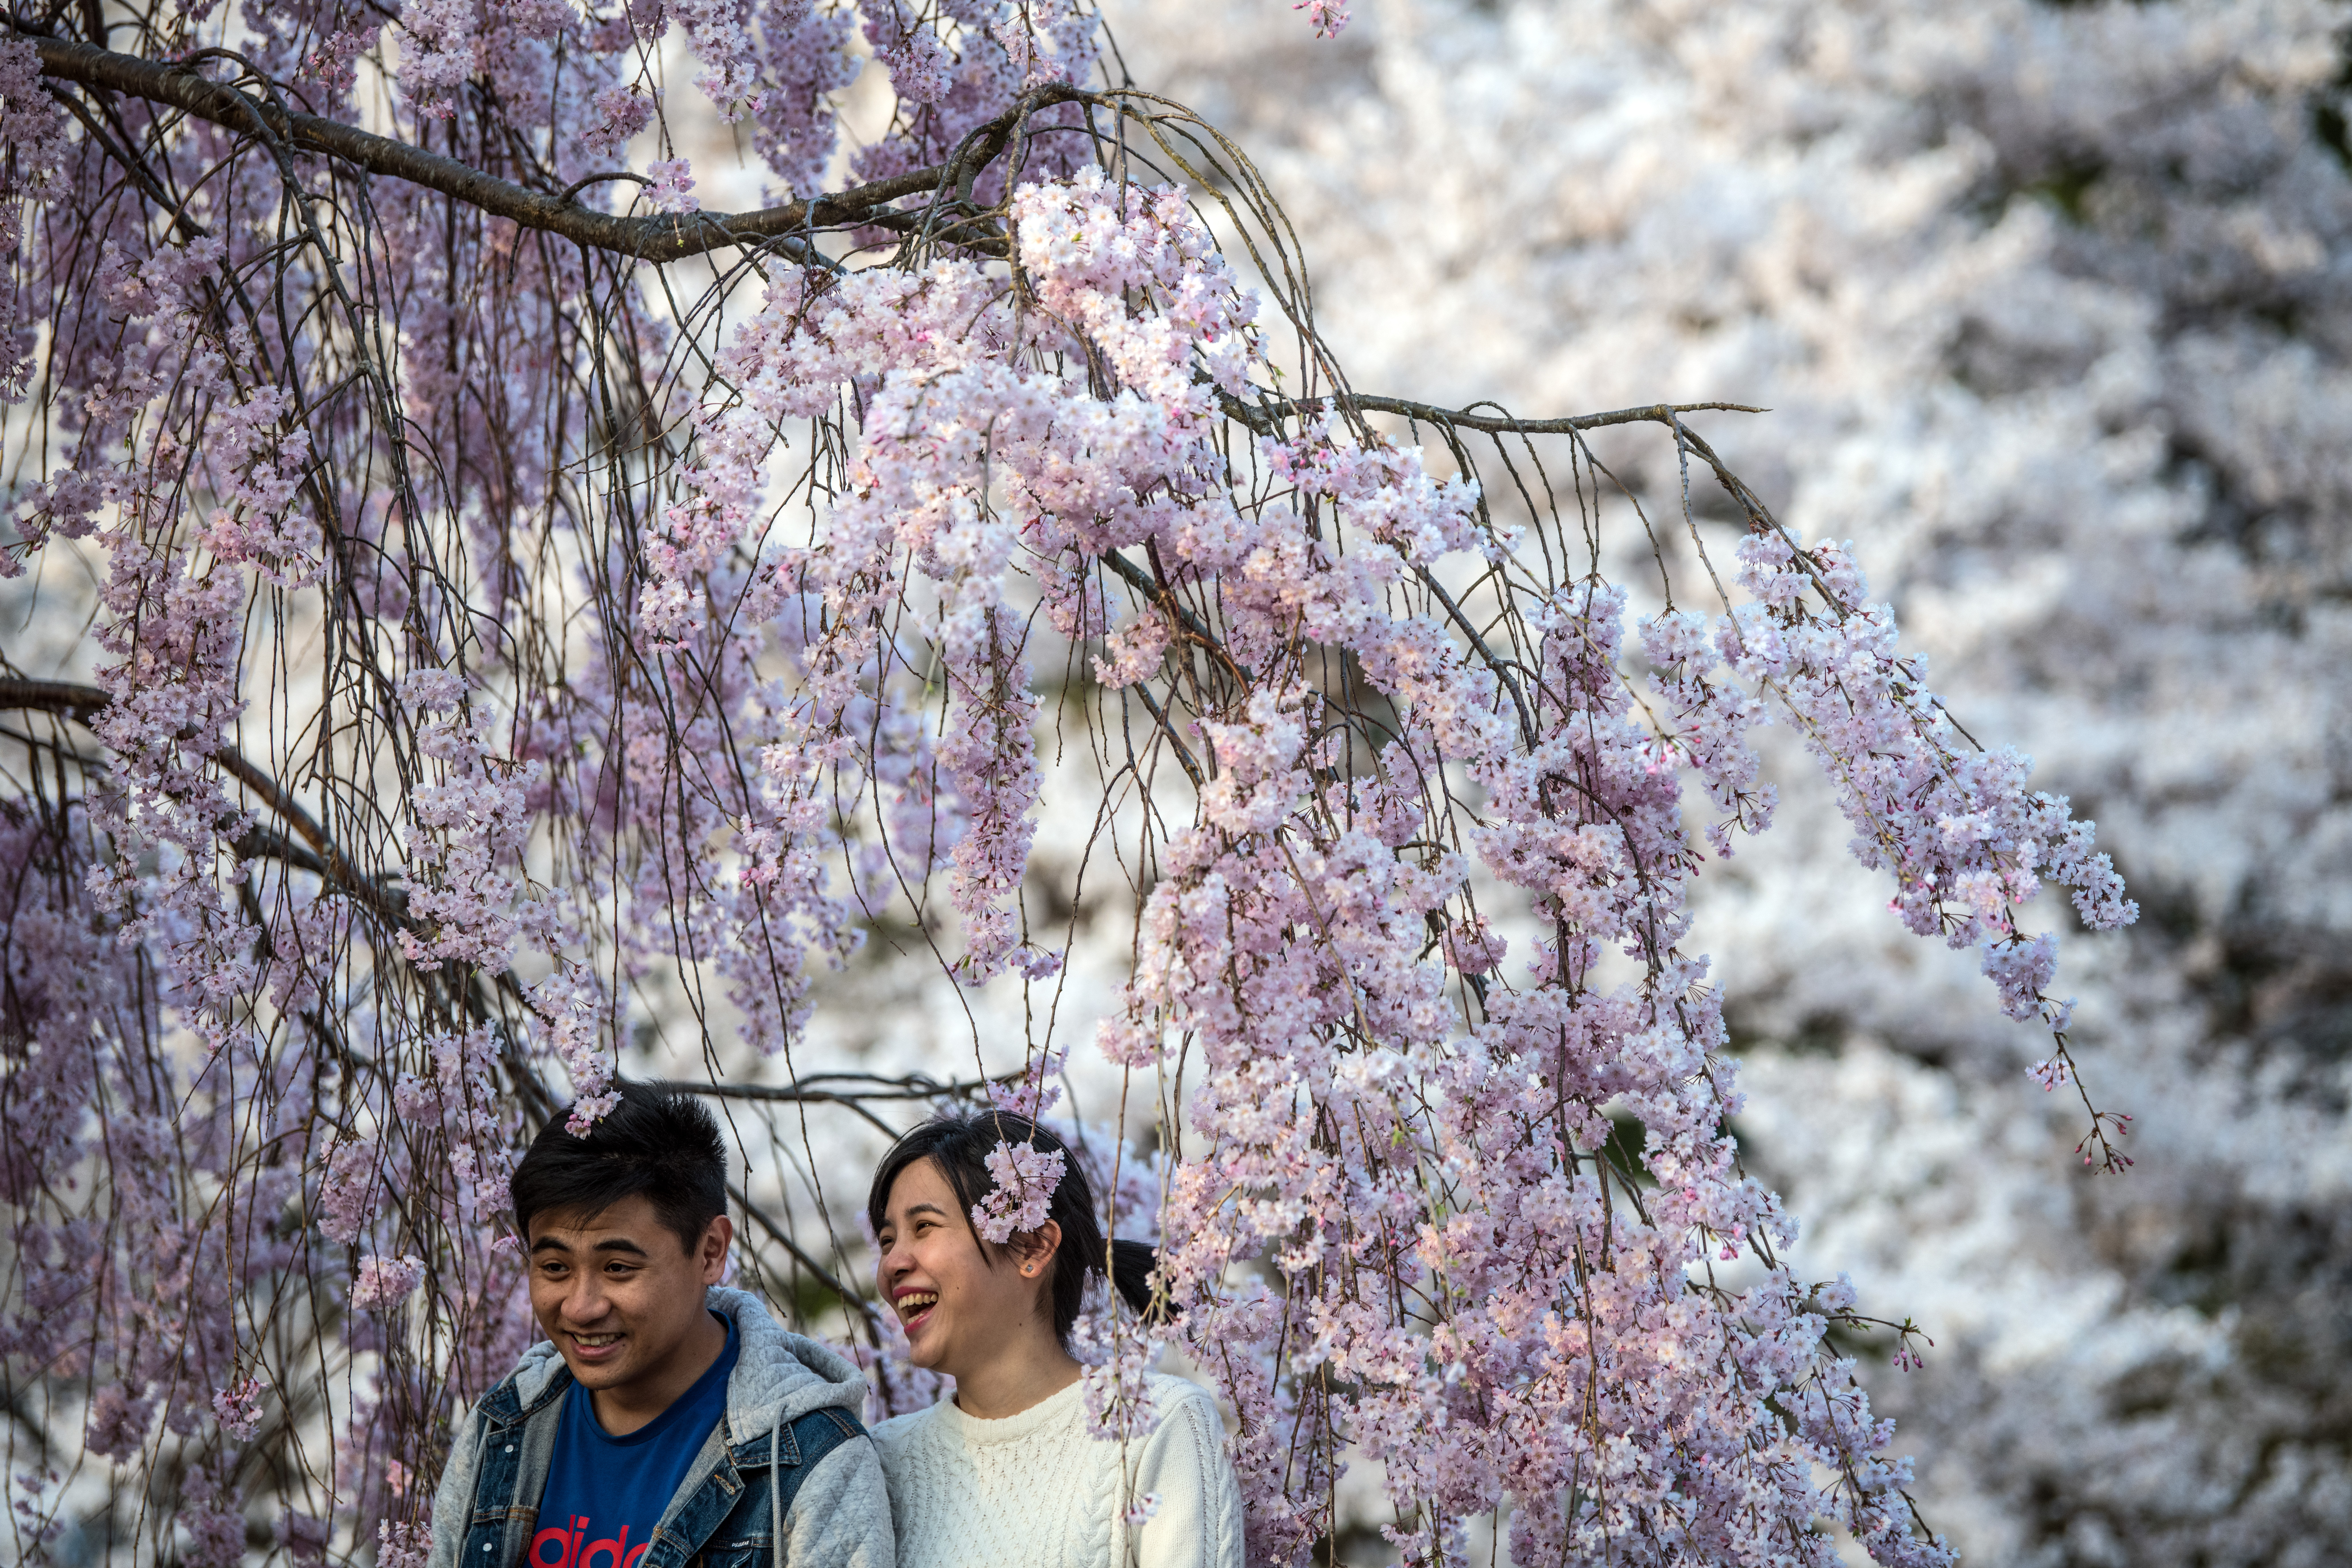 A couple pose for a photograph under a cherry blossom tree in Kameoka, Japan on April 2, 2018.